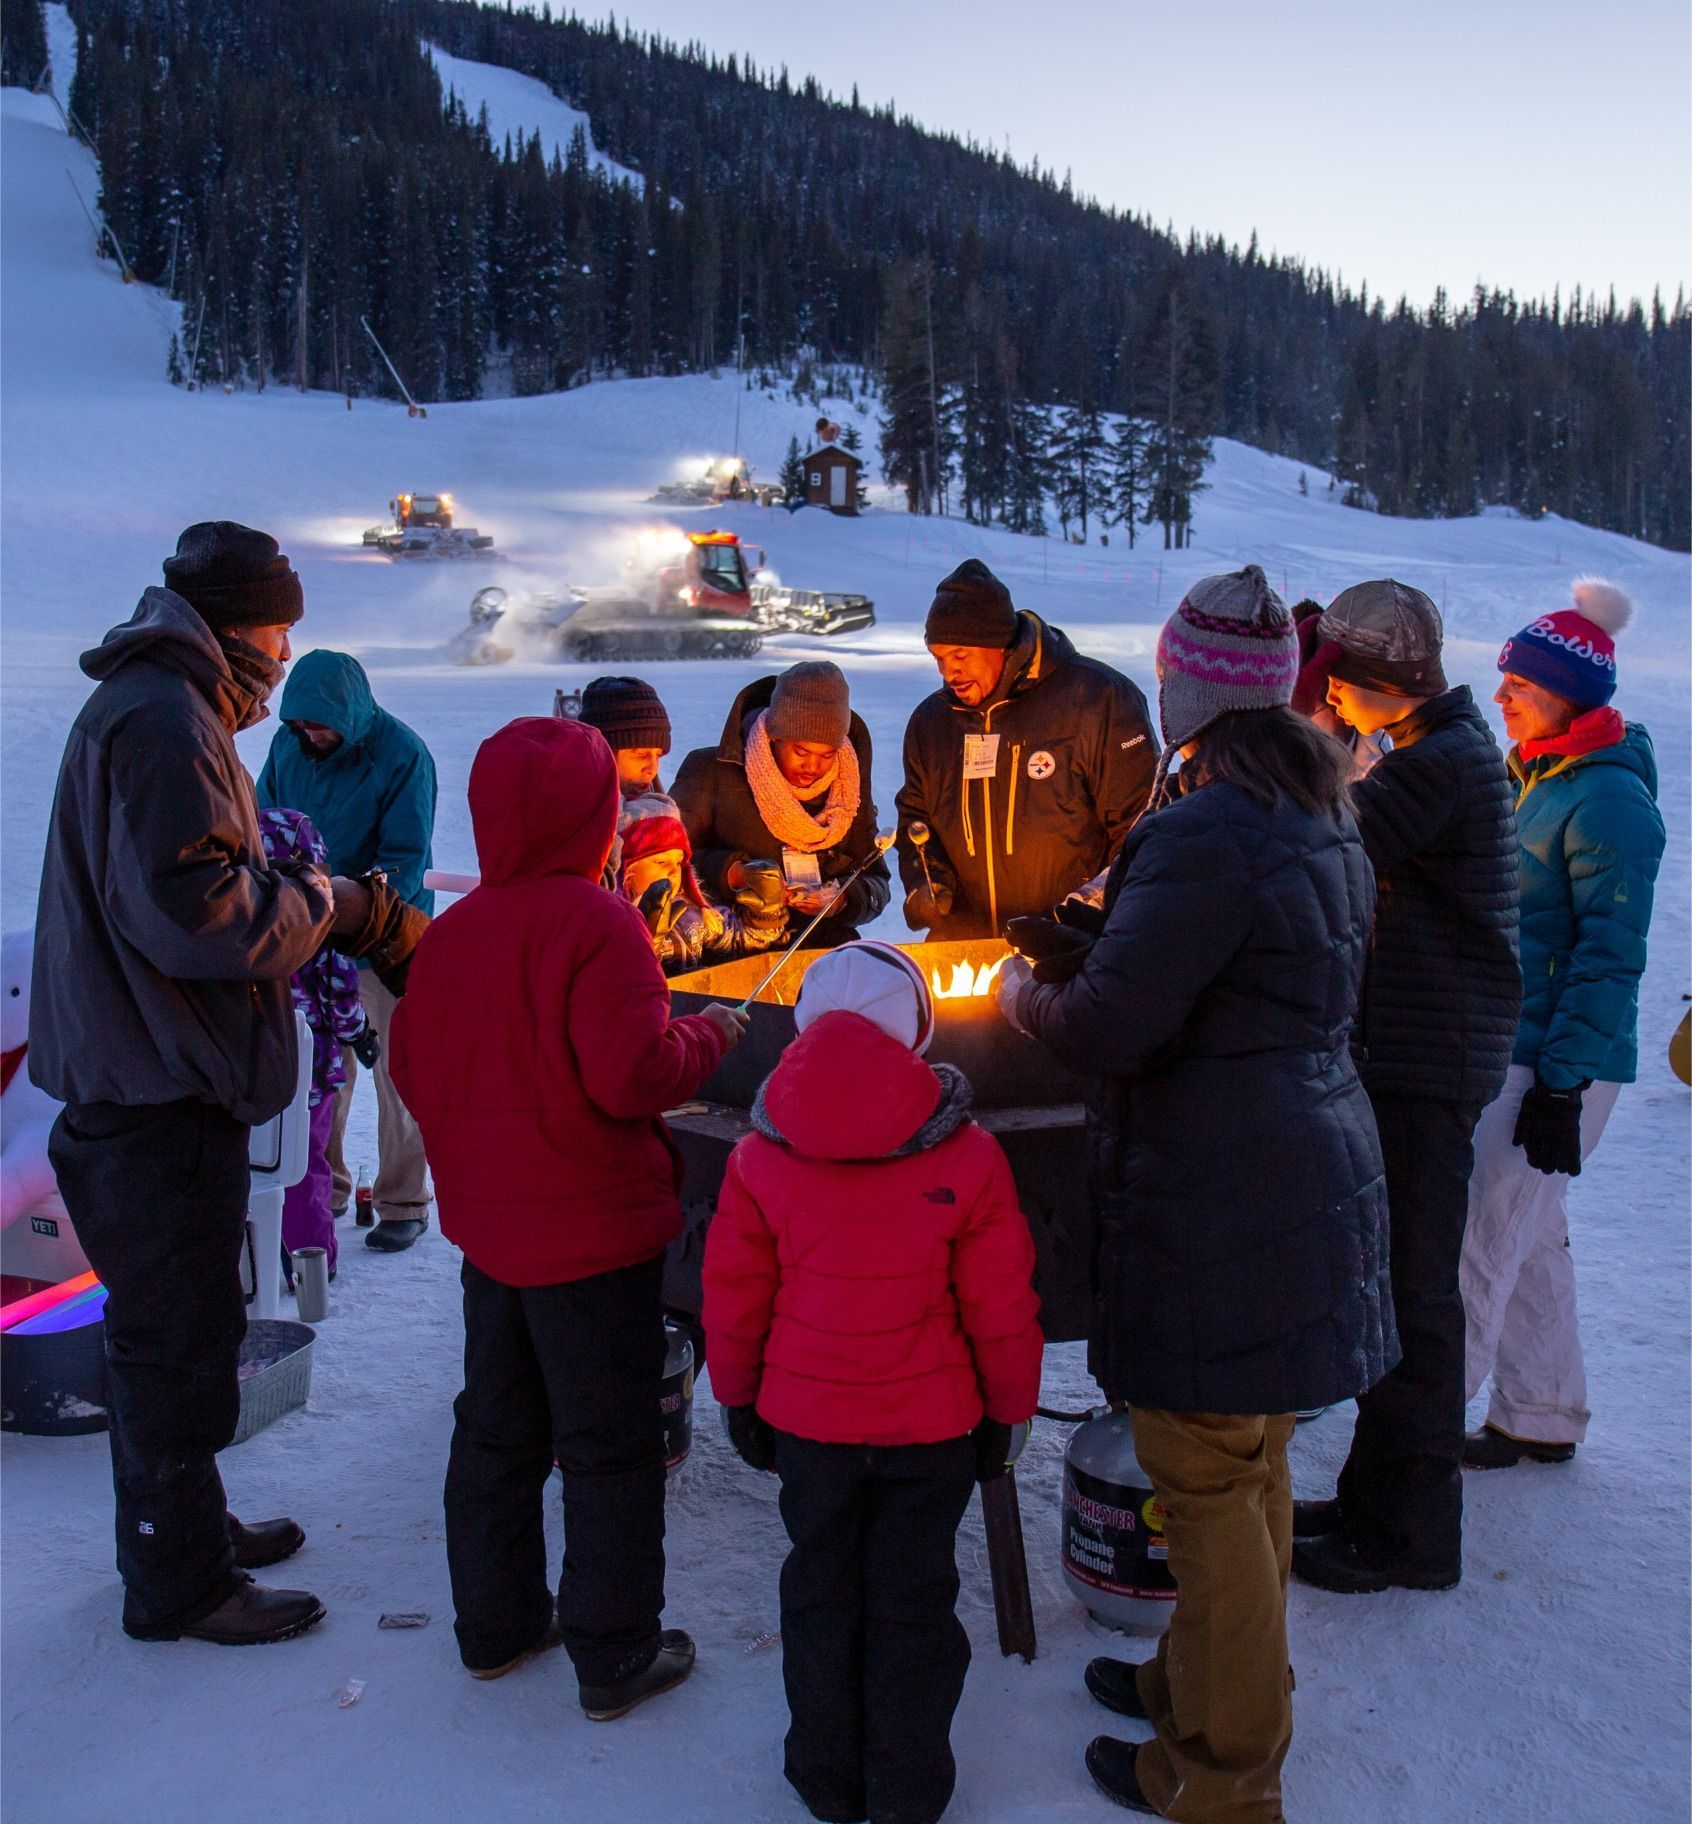 Click For 2019 Event Schedule Copper Mountain Ski Resort Events Apes Weekend Fun Things To Do F Copper Mountain Ski Resort Copper Mountain Ski Weekend Fun